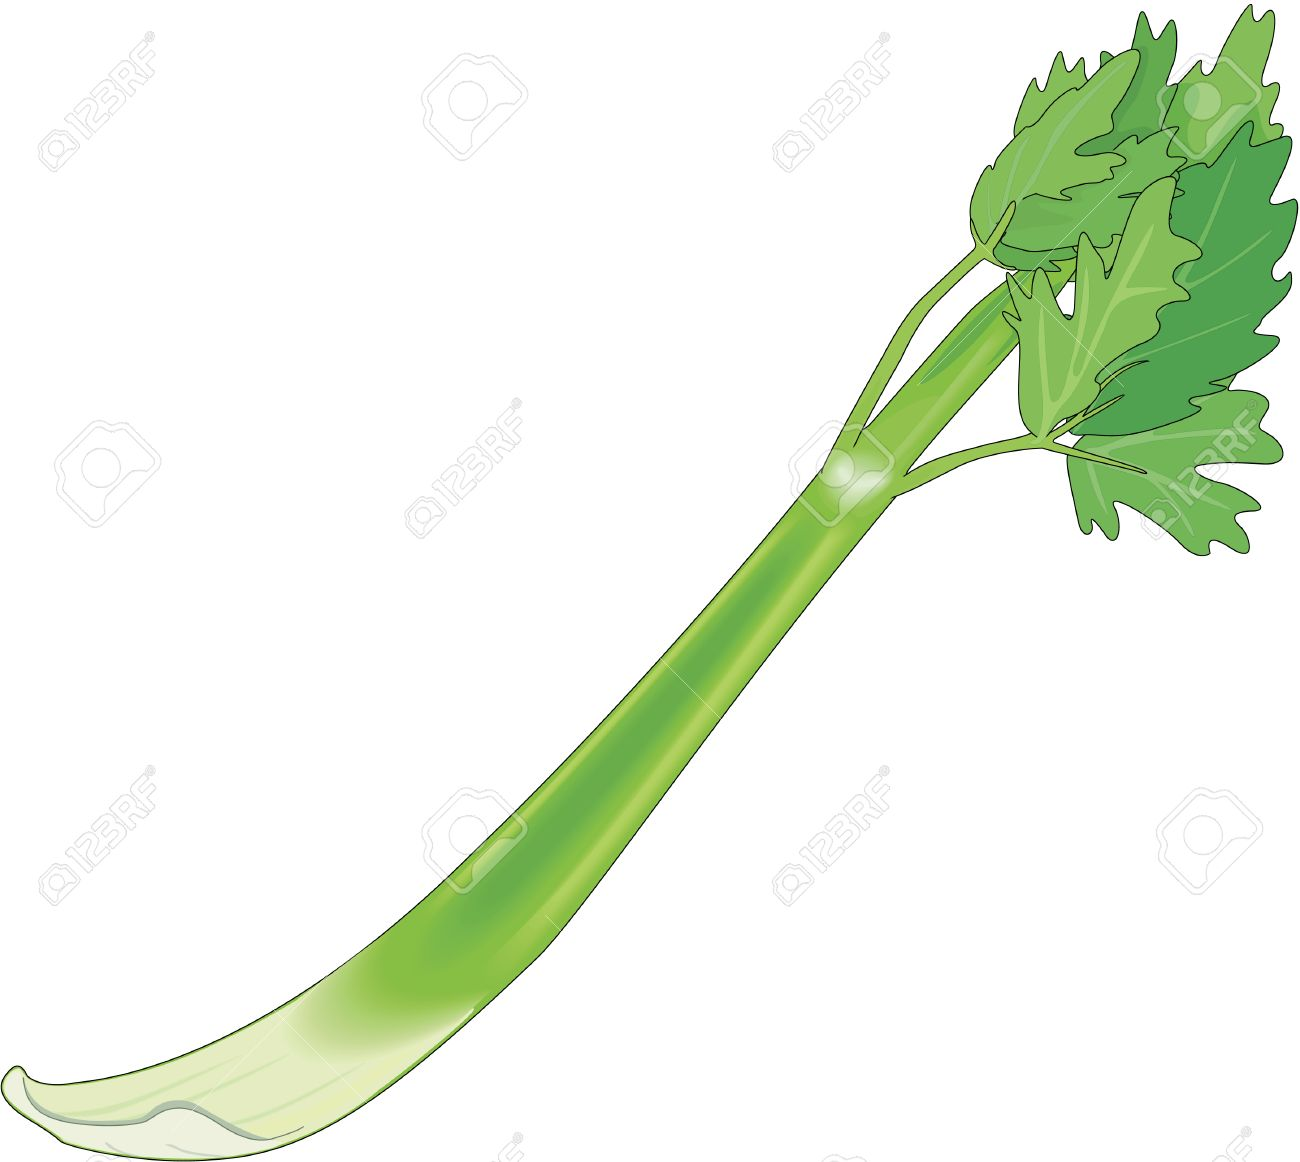 302 Celery Stalk Cliparts, Stock Vector And Royalty Free Celery.